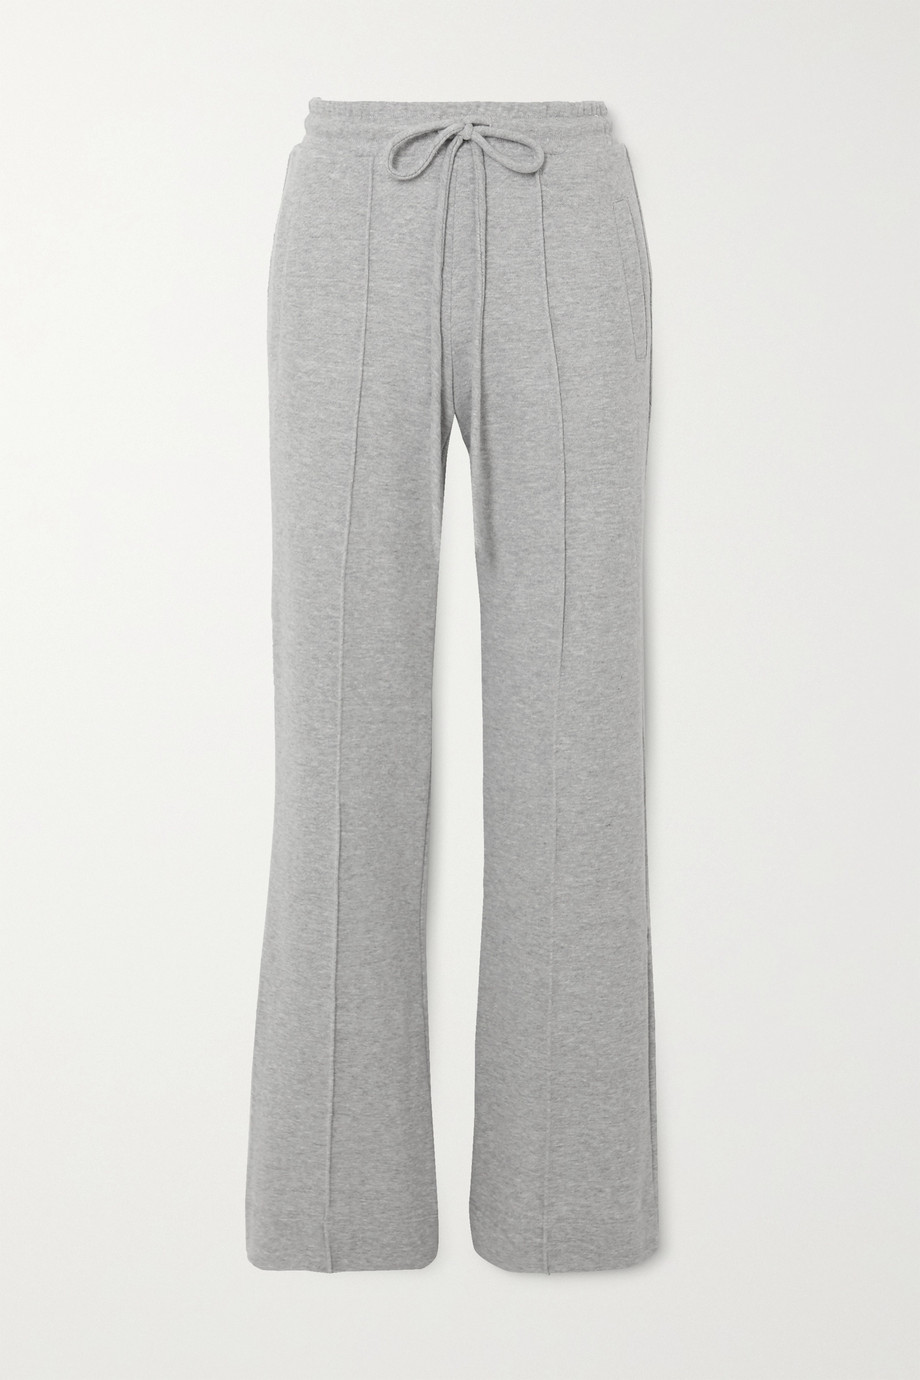 TWENTY Montréal Sunnyside mélange cotton-blend terry track pants